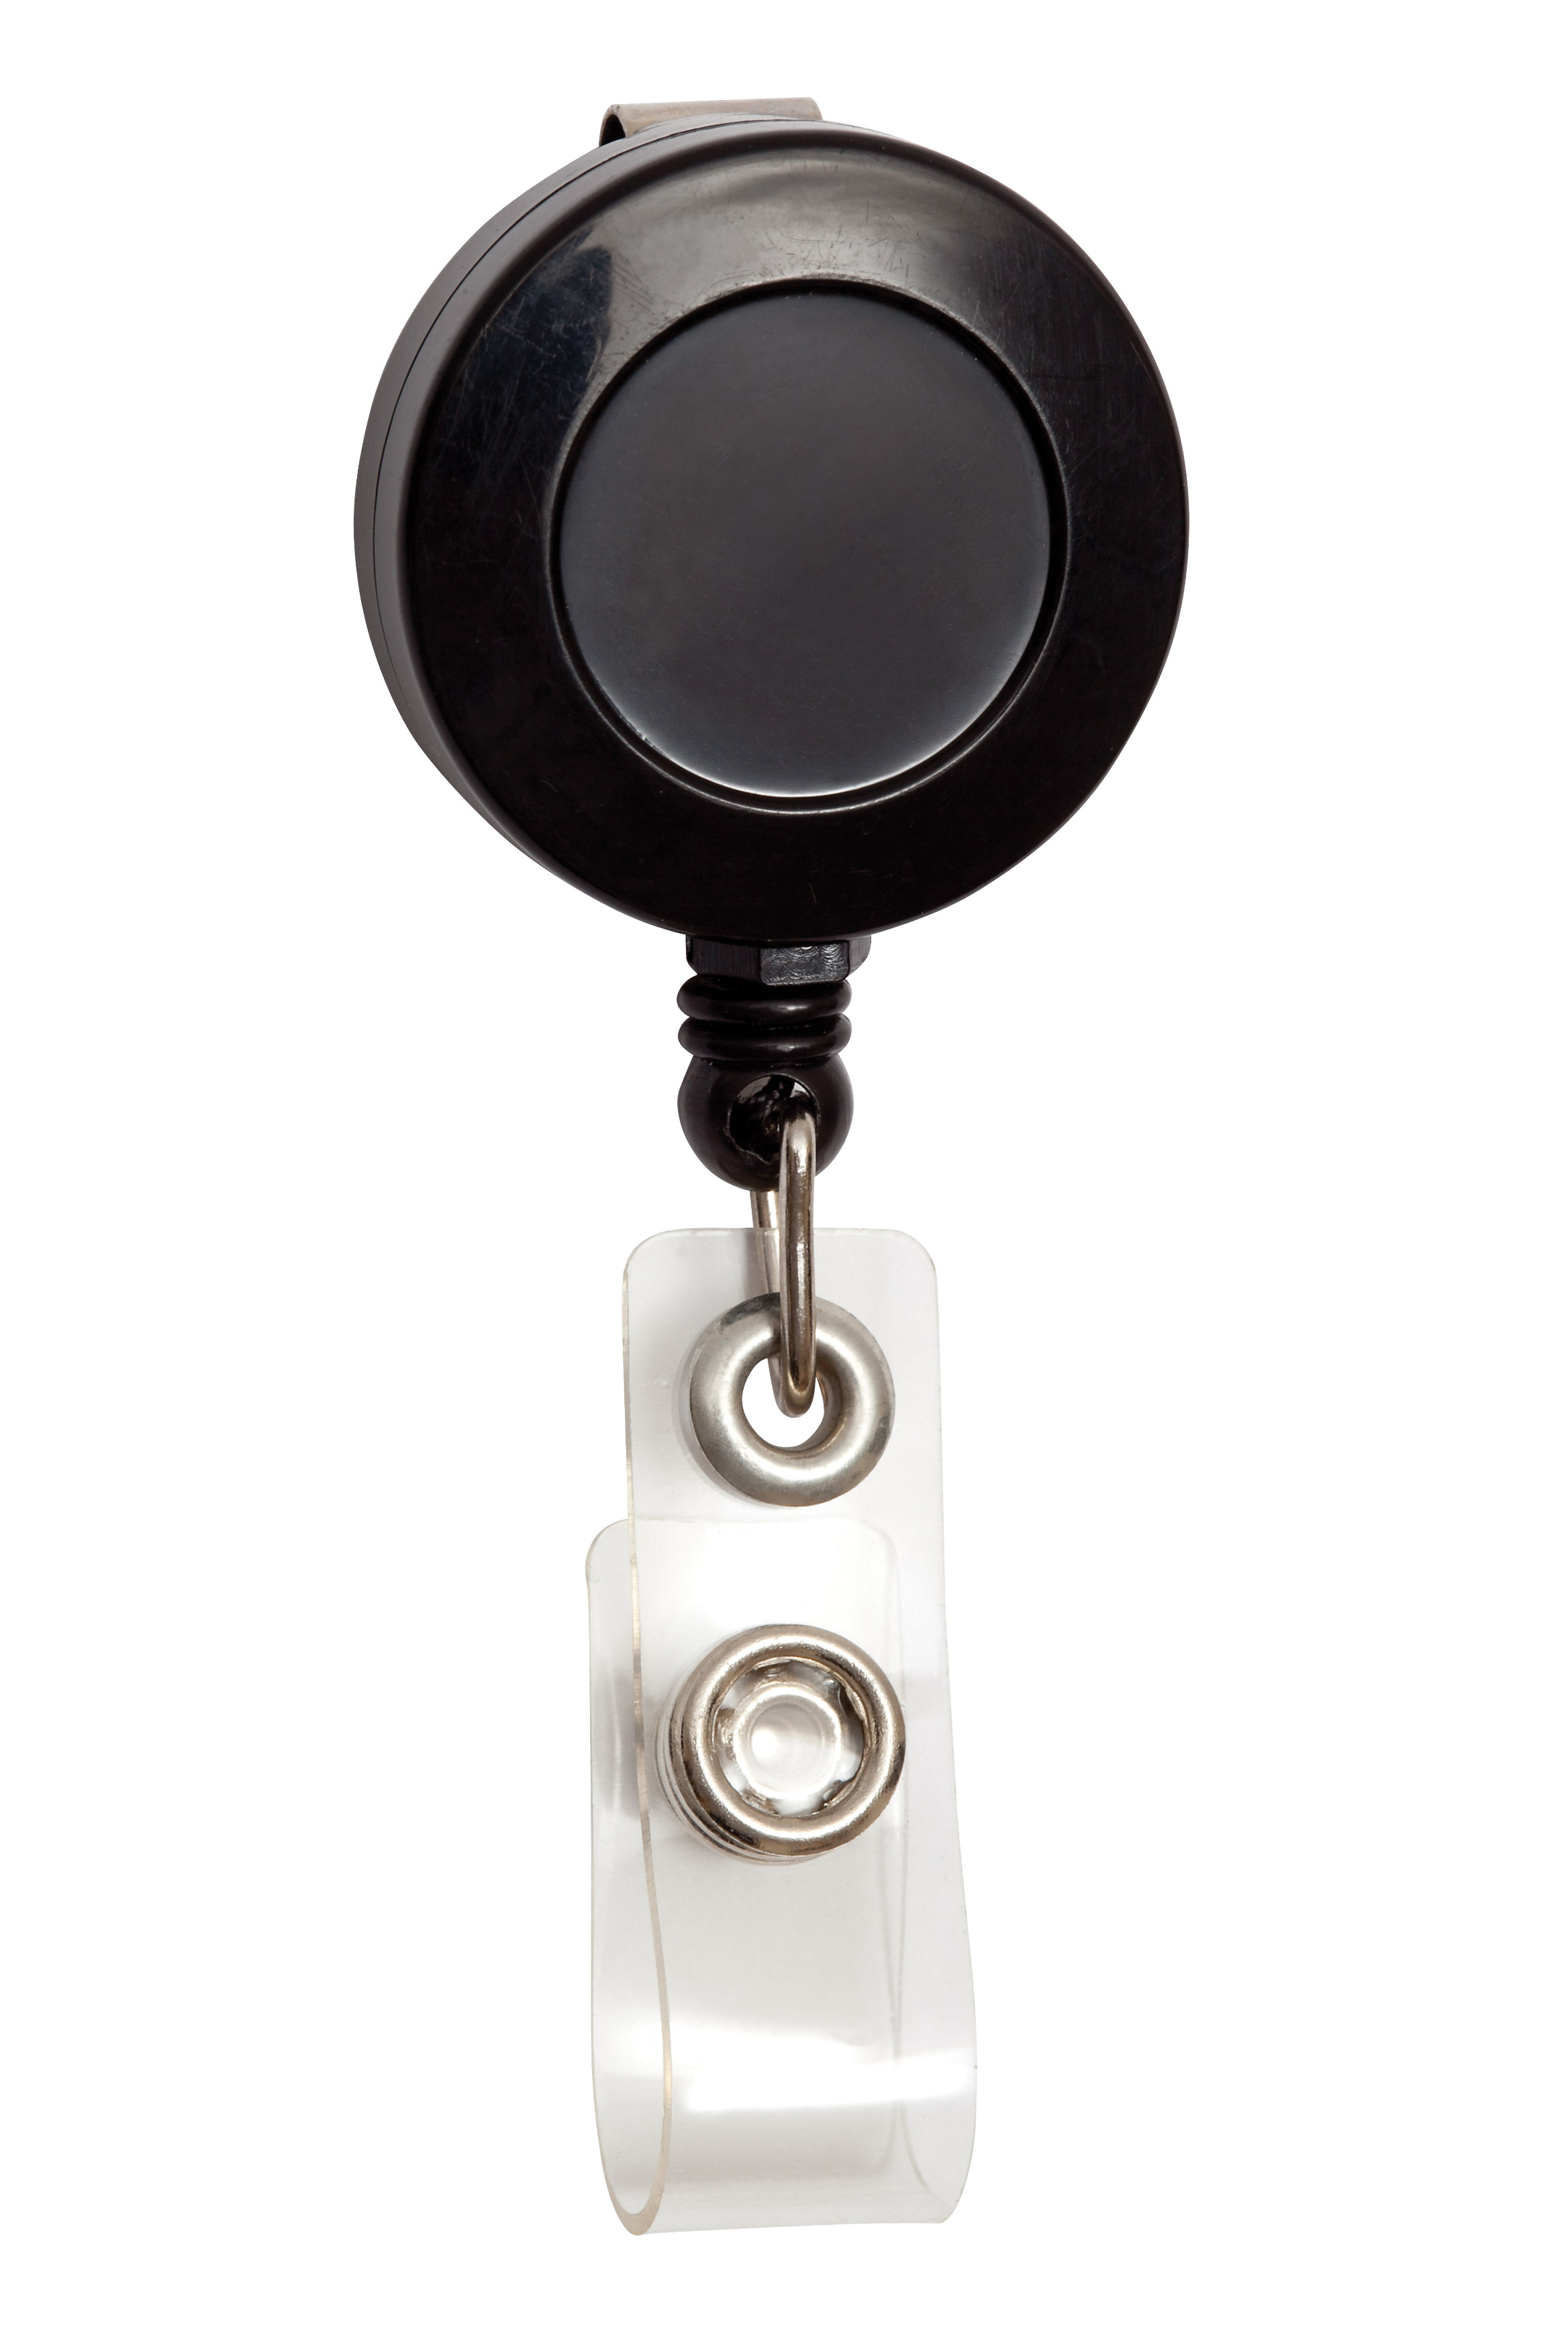 Round Retractable Badge Reels With Nylon Zip Pull Cord Are